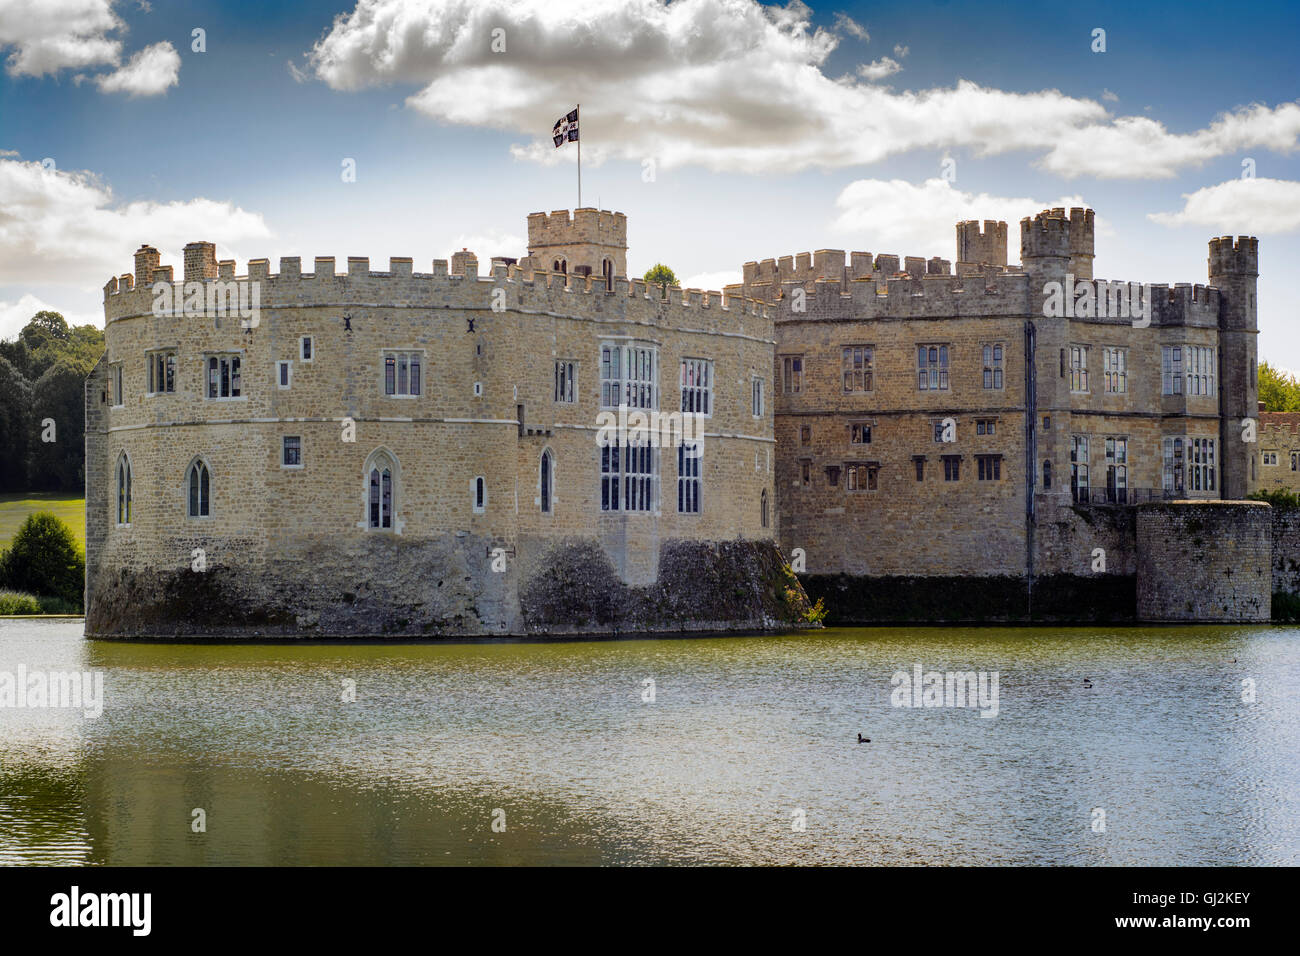 Leeds Castle - Stock Image